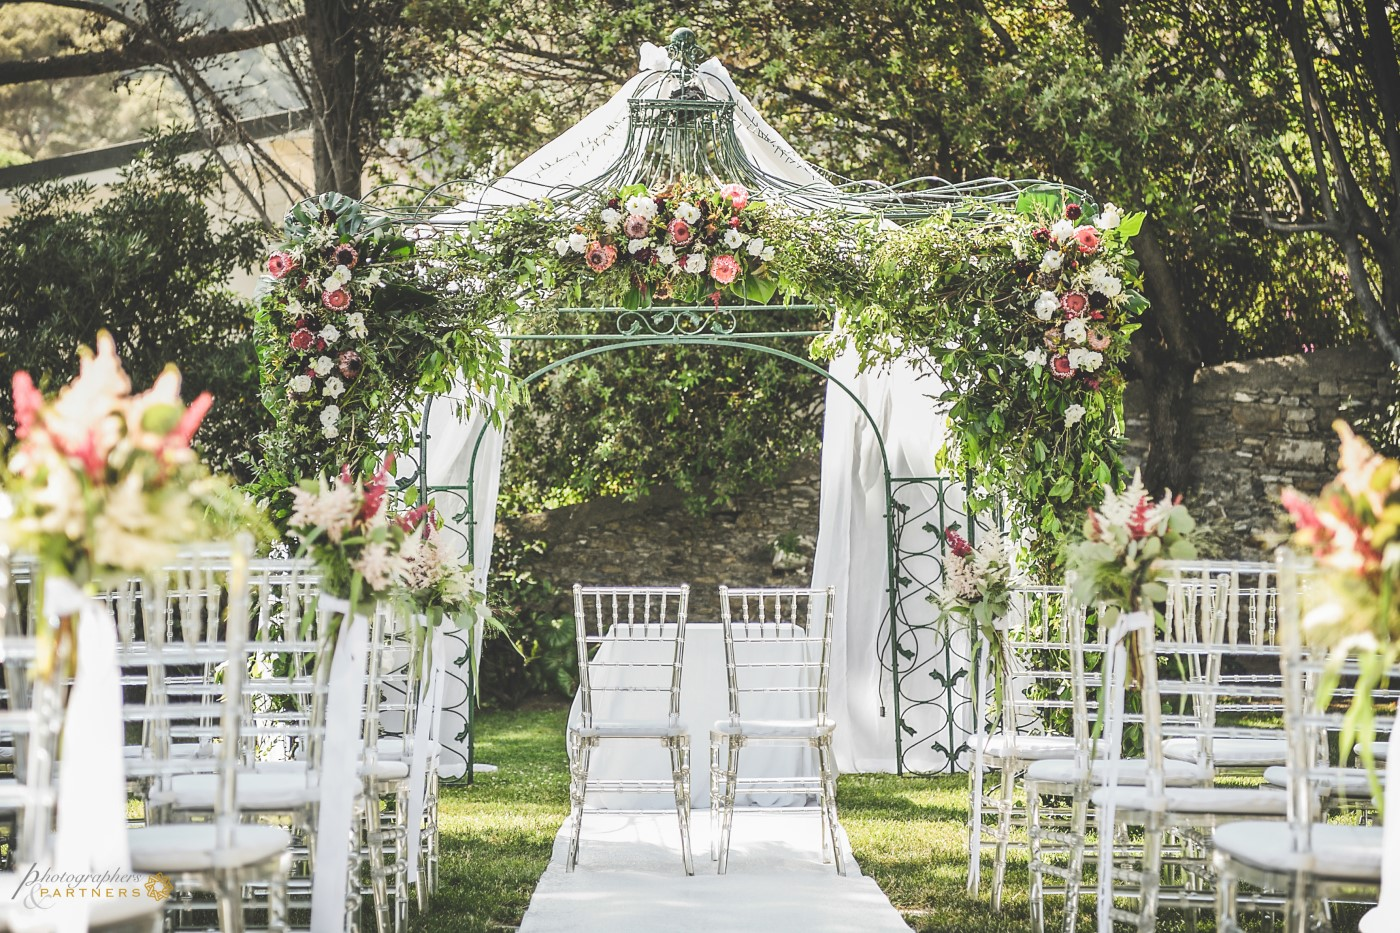 The decorations of the gazebo for the wedding.